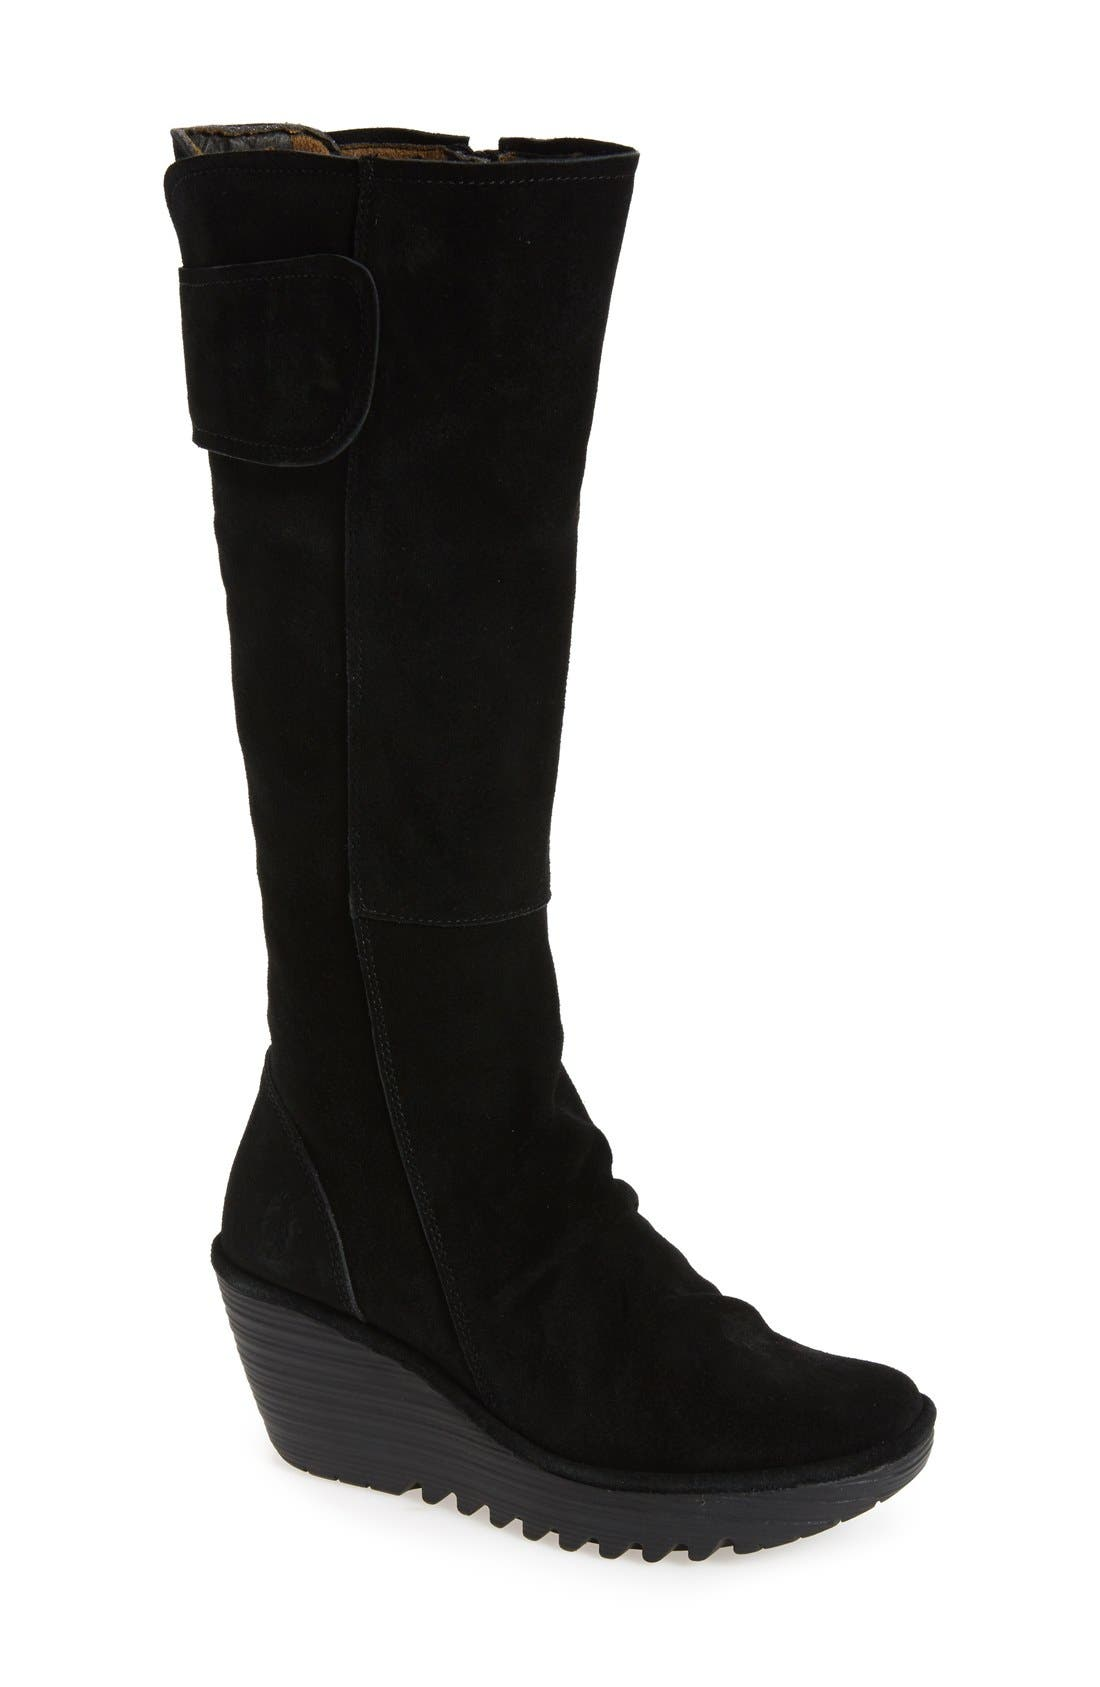 'Yulo' Knee High Wedge Platform Boot,                             Main thumbnail 1, color,                             003